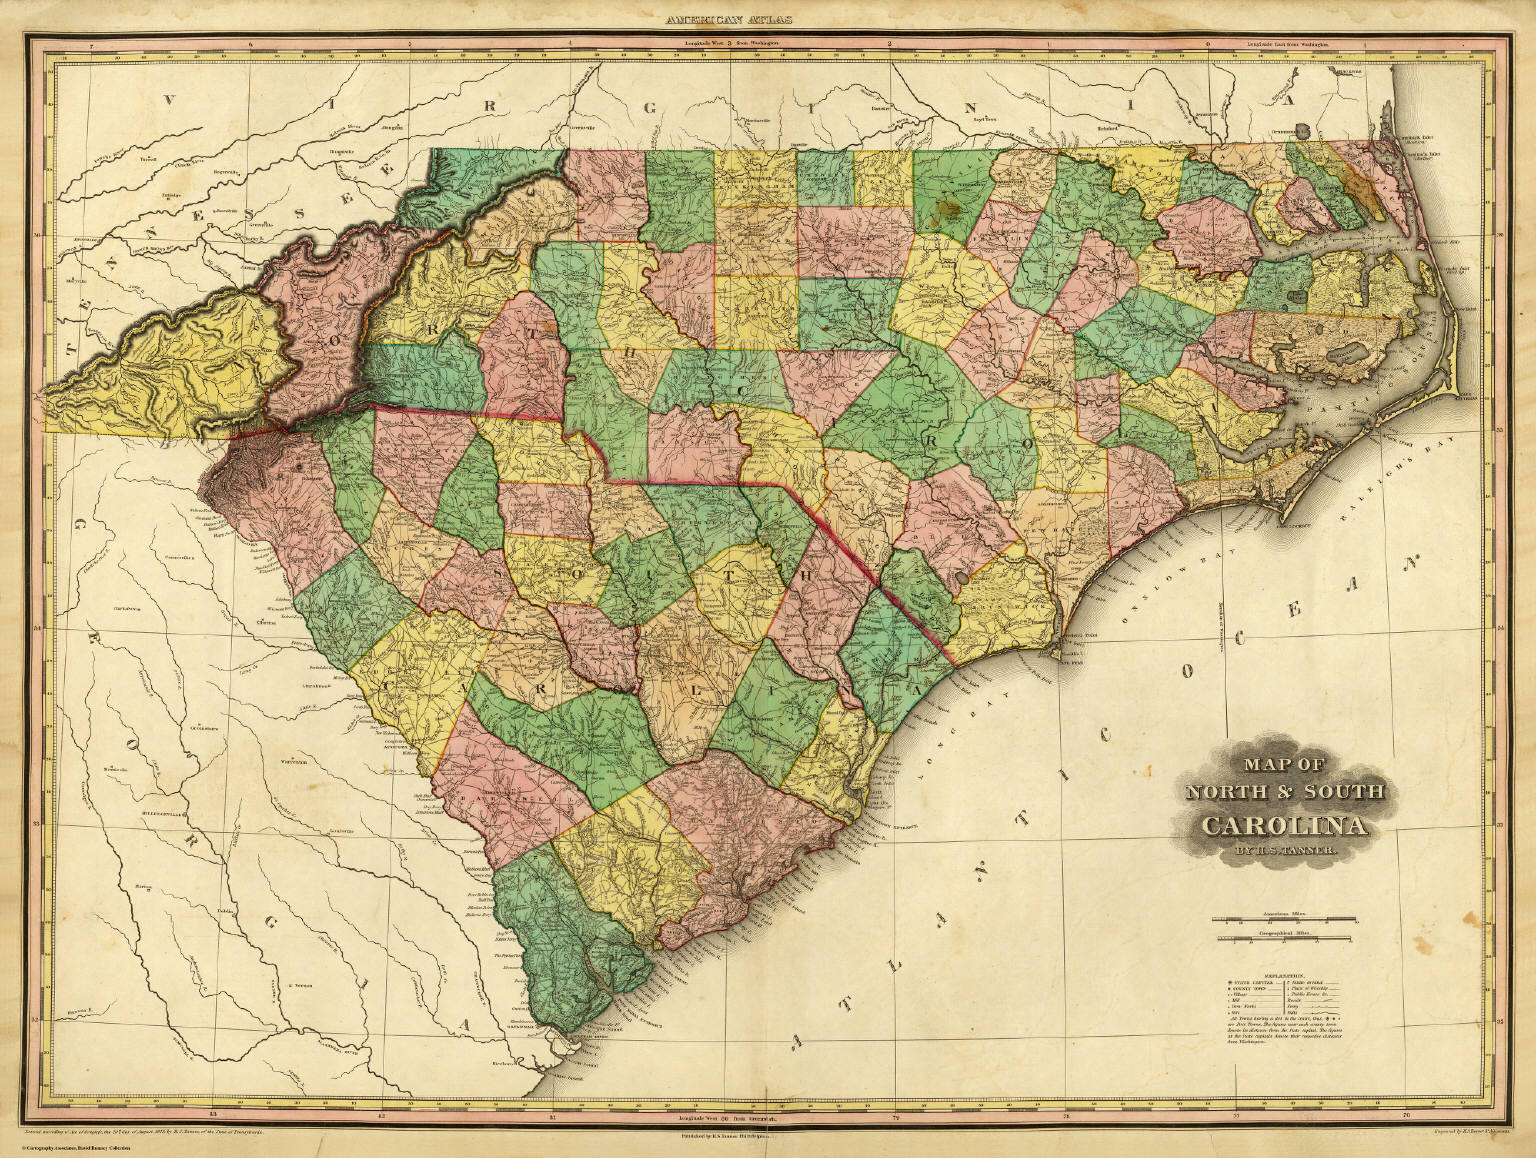 Map of North & South Carolina. / Tanner, Henry S. / 1823